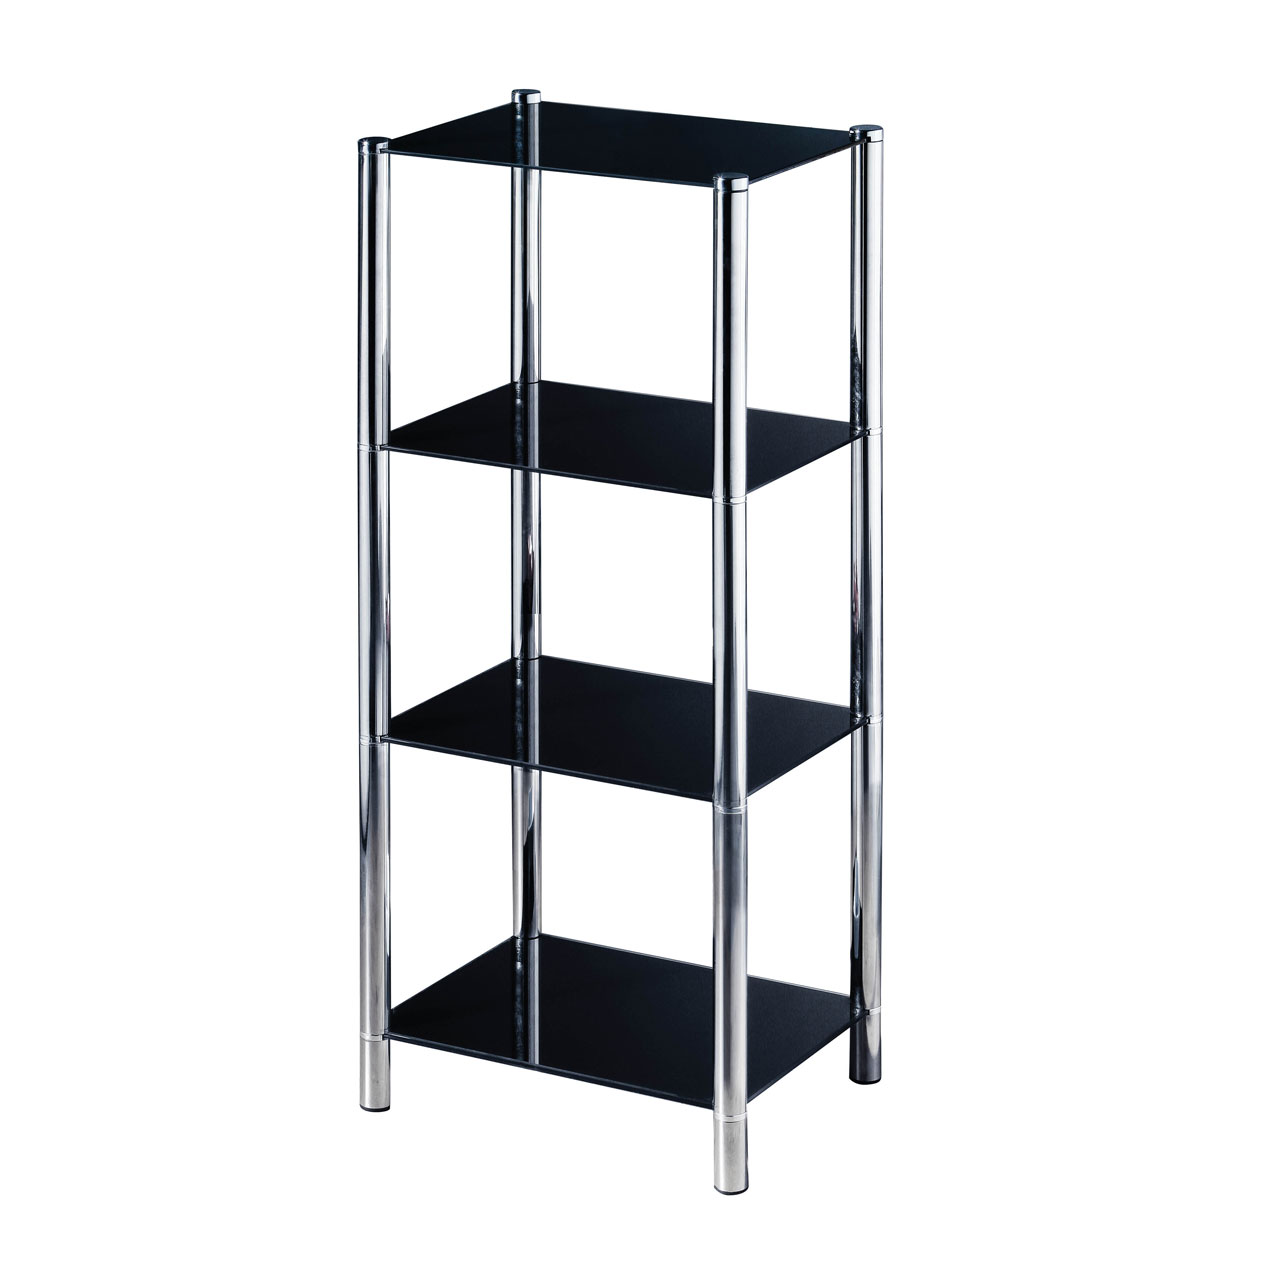 4 tier shelving unit chrome glass lounge storage tower. Black Bedroom Furniture Sets. Home Design Ideas